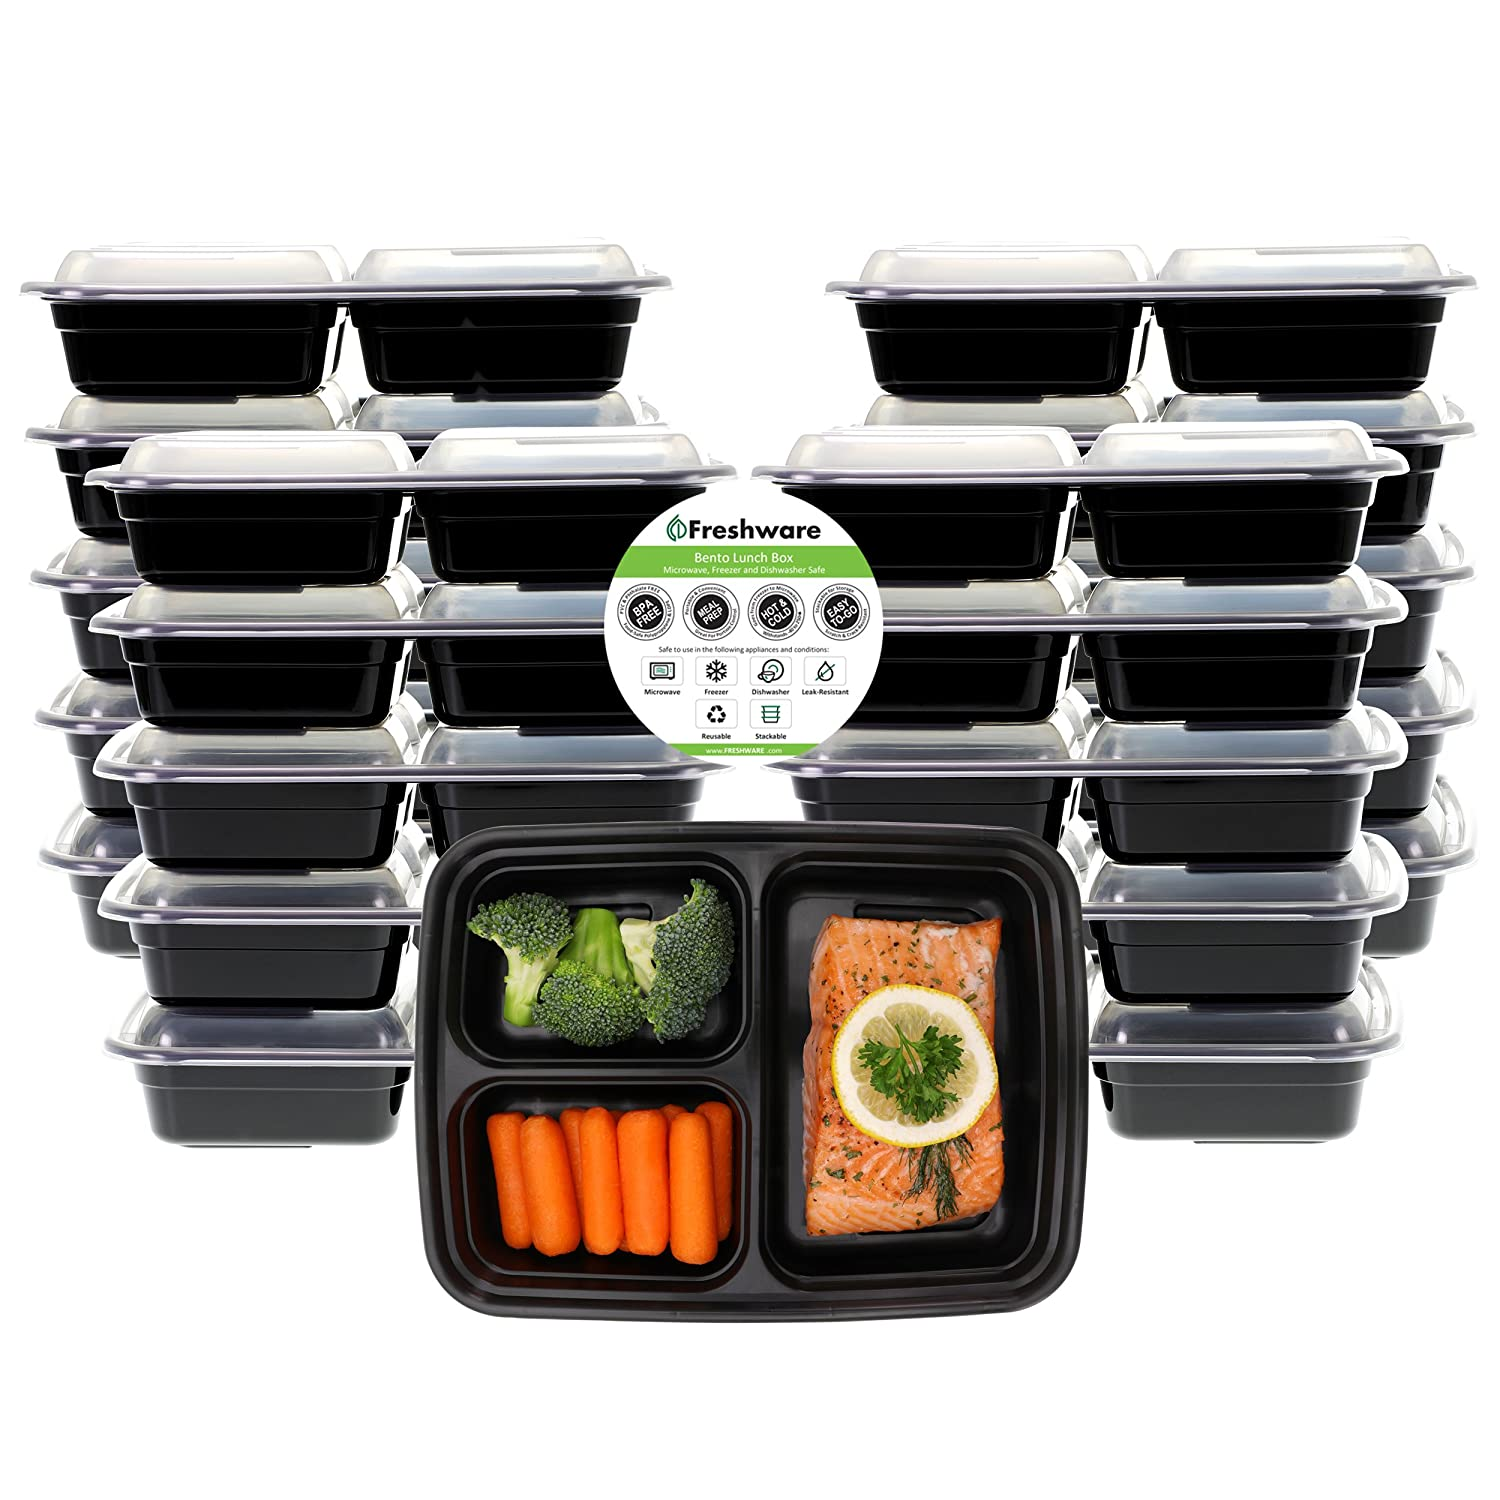 Freshware Meal Prep Containers [21 Pack] 3 Compartment with Lids, Food Storage Bento Box | BPA Free | Stackable | Lunch Boxes, Microwave/Dishwasher/Freezer Safe, Portion Control, 21 Day fix (24 oz) YH-3X21B